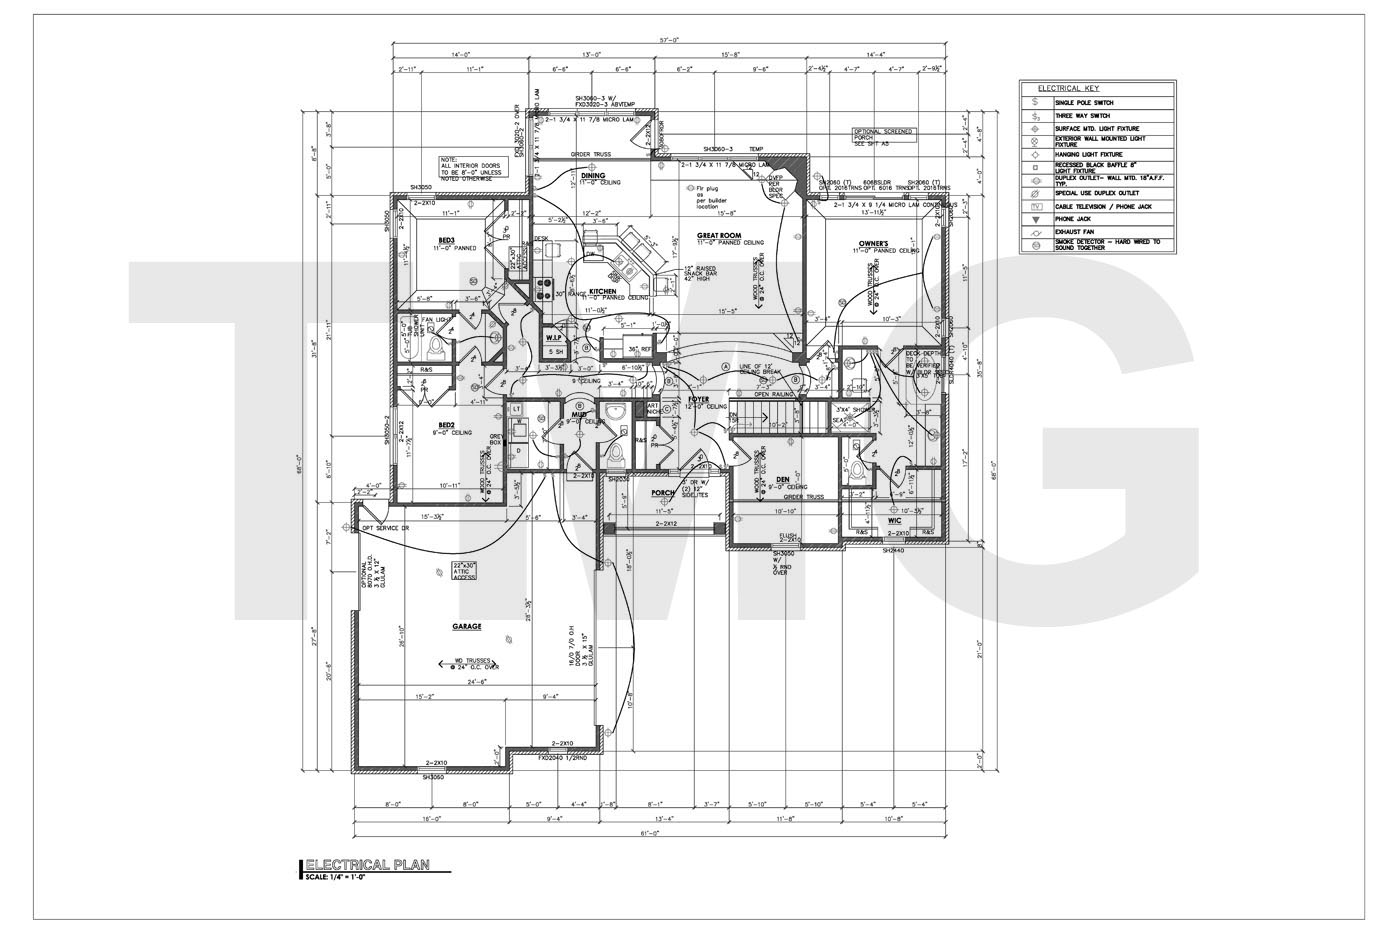 House Plans Drafting The Magnum Group Tmg India: house plan sample